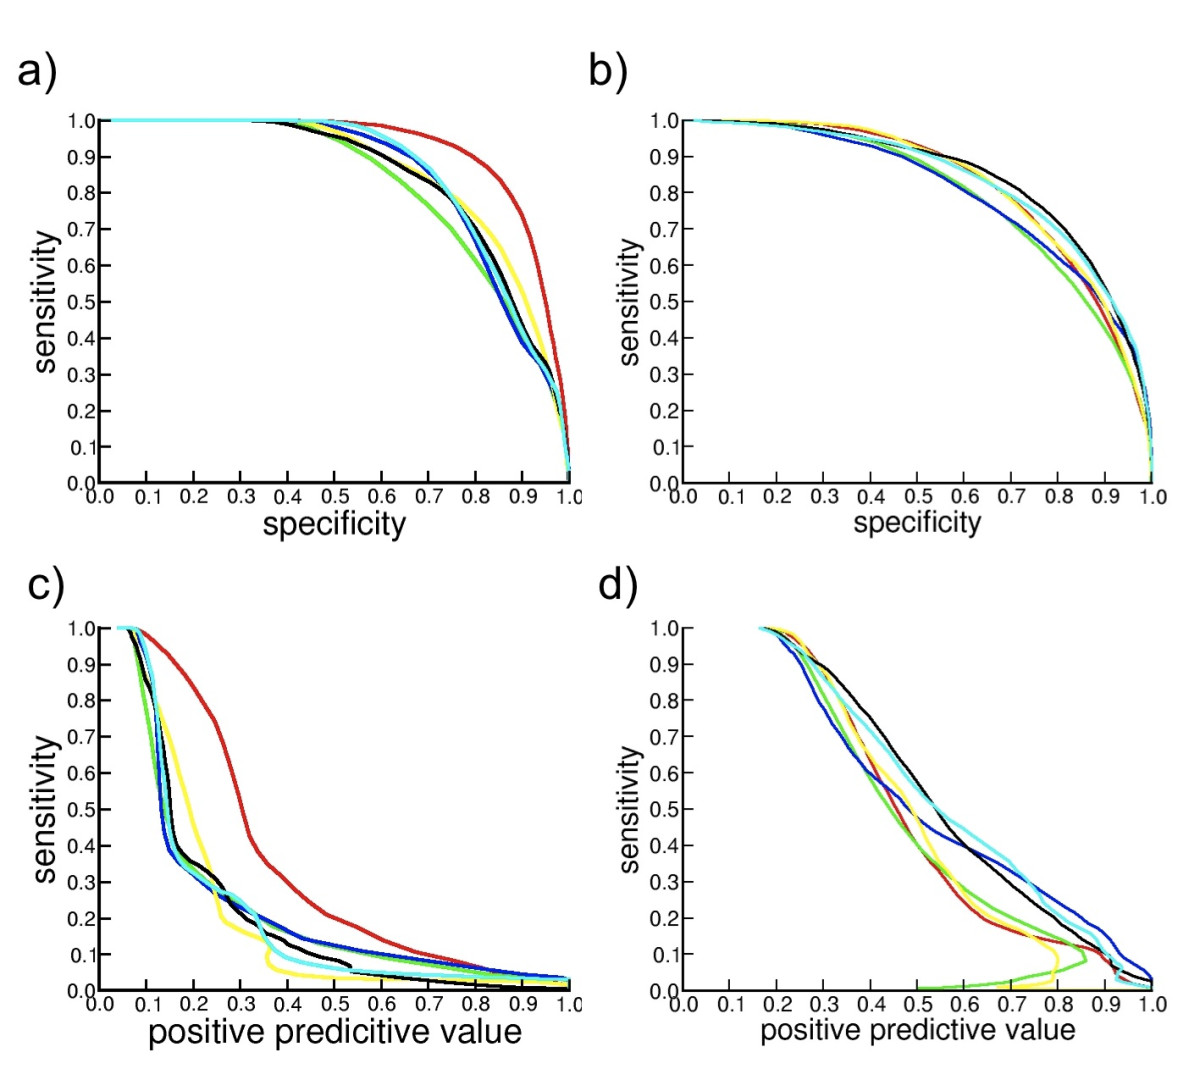 http://static-content.springer.com/image/art%3A10.1186%2F1472-6807-9-71/MediaObjects/12900_2009_Article_291_Fig5_HTML.jpg